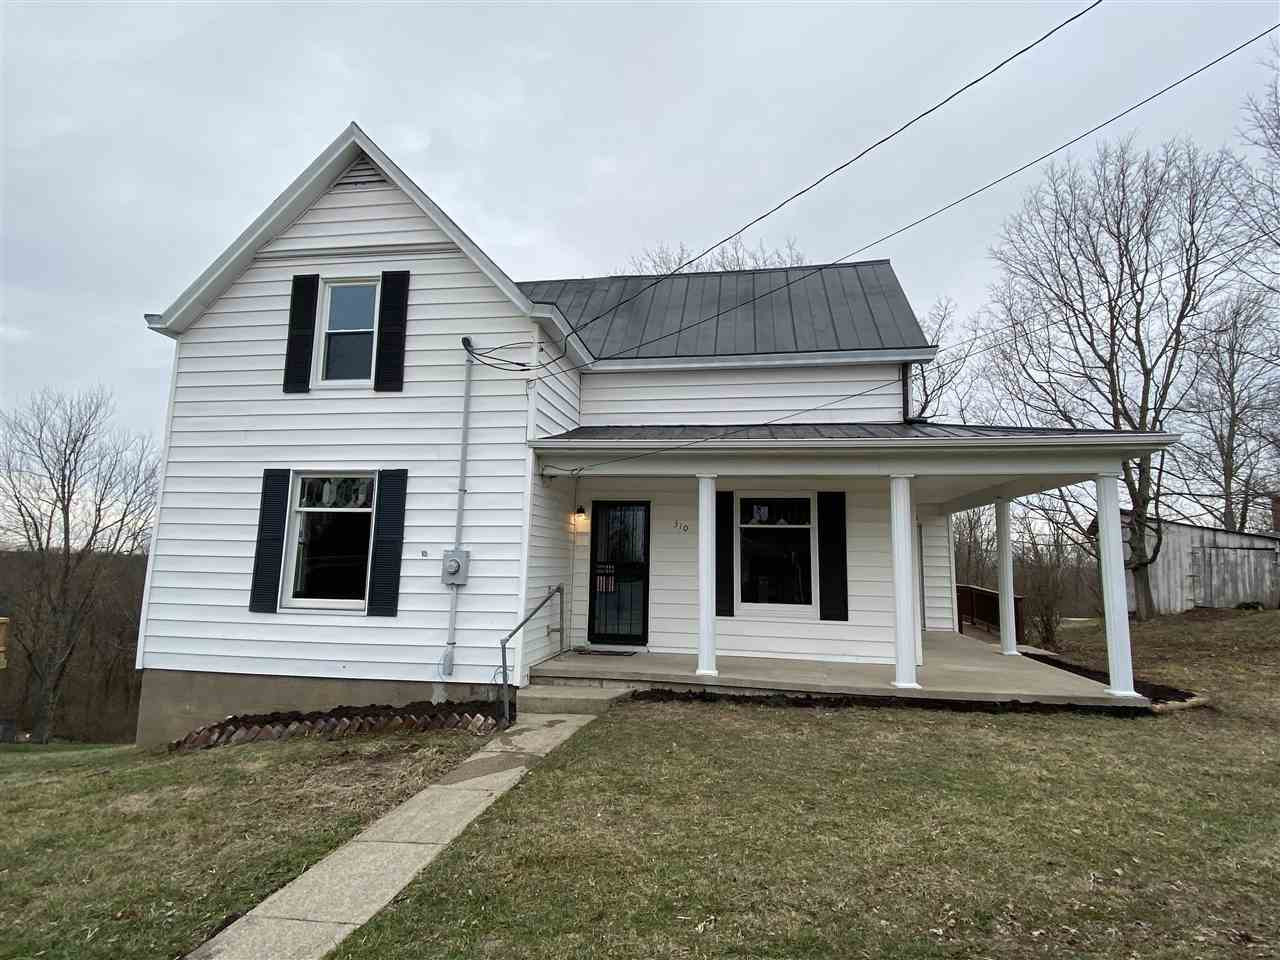 Photo 2 for 310 Old Corinth Rd Corinth, KY 41010